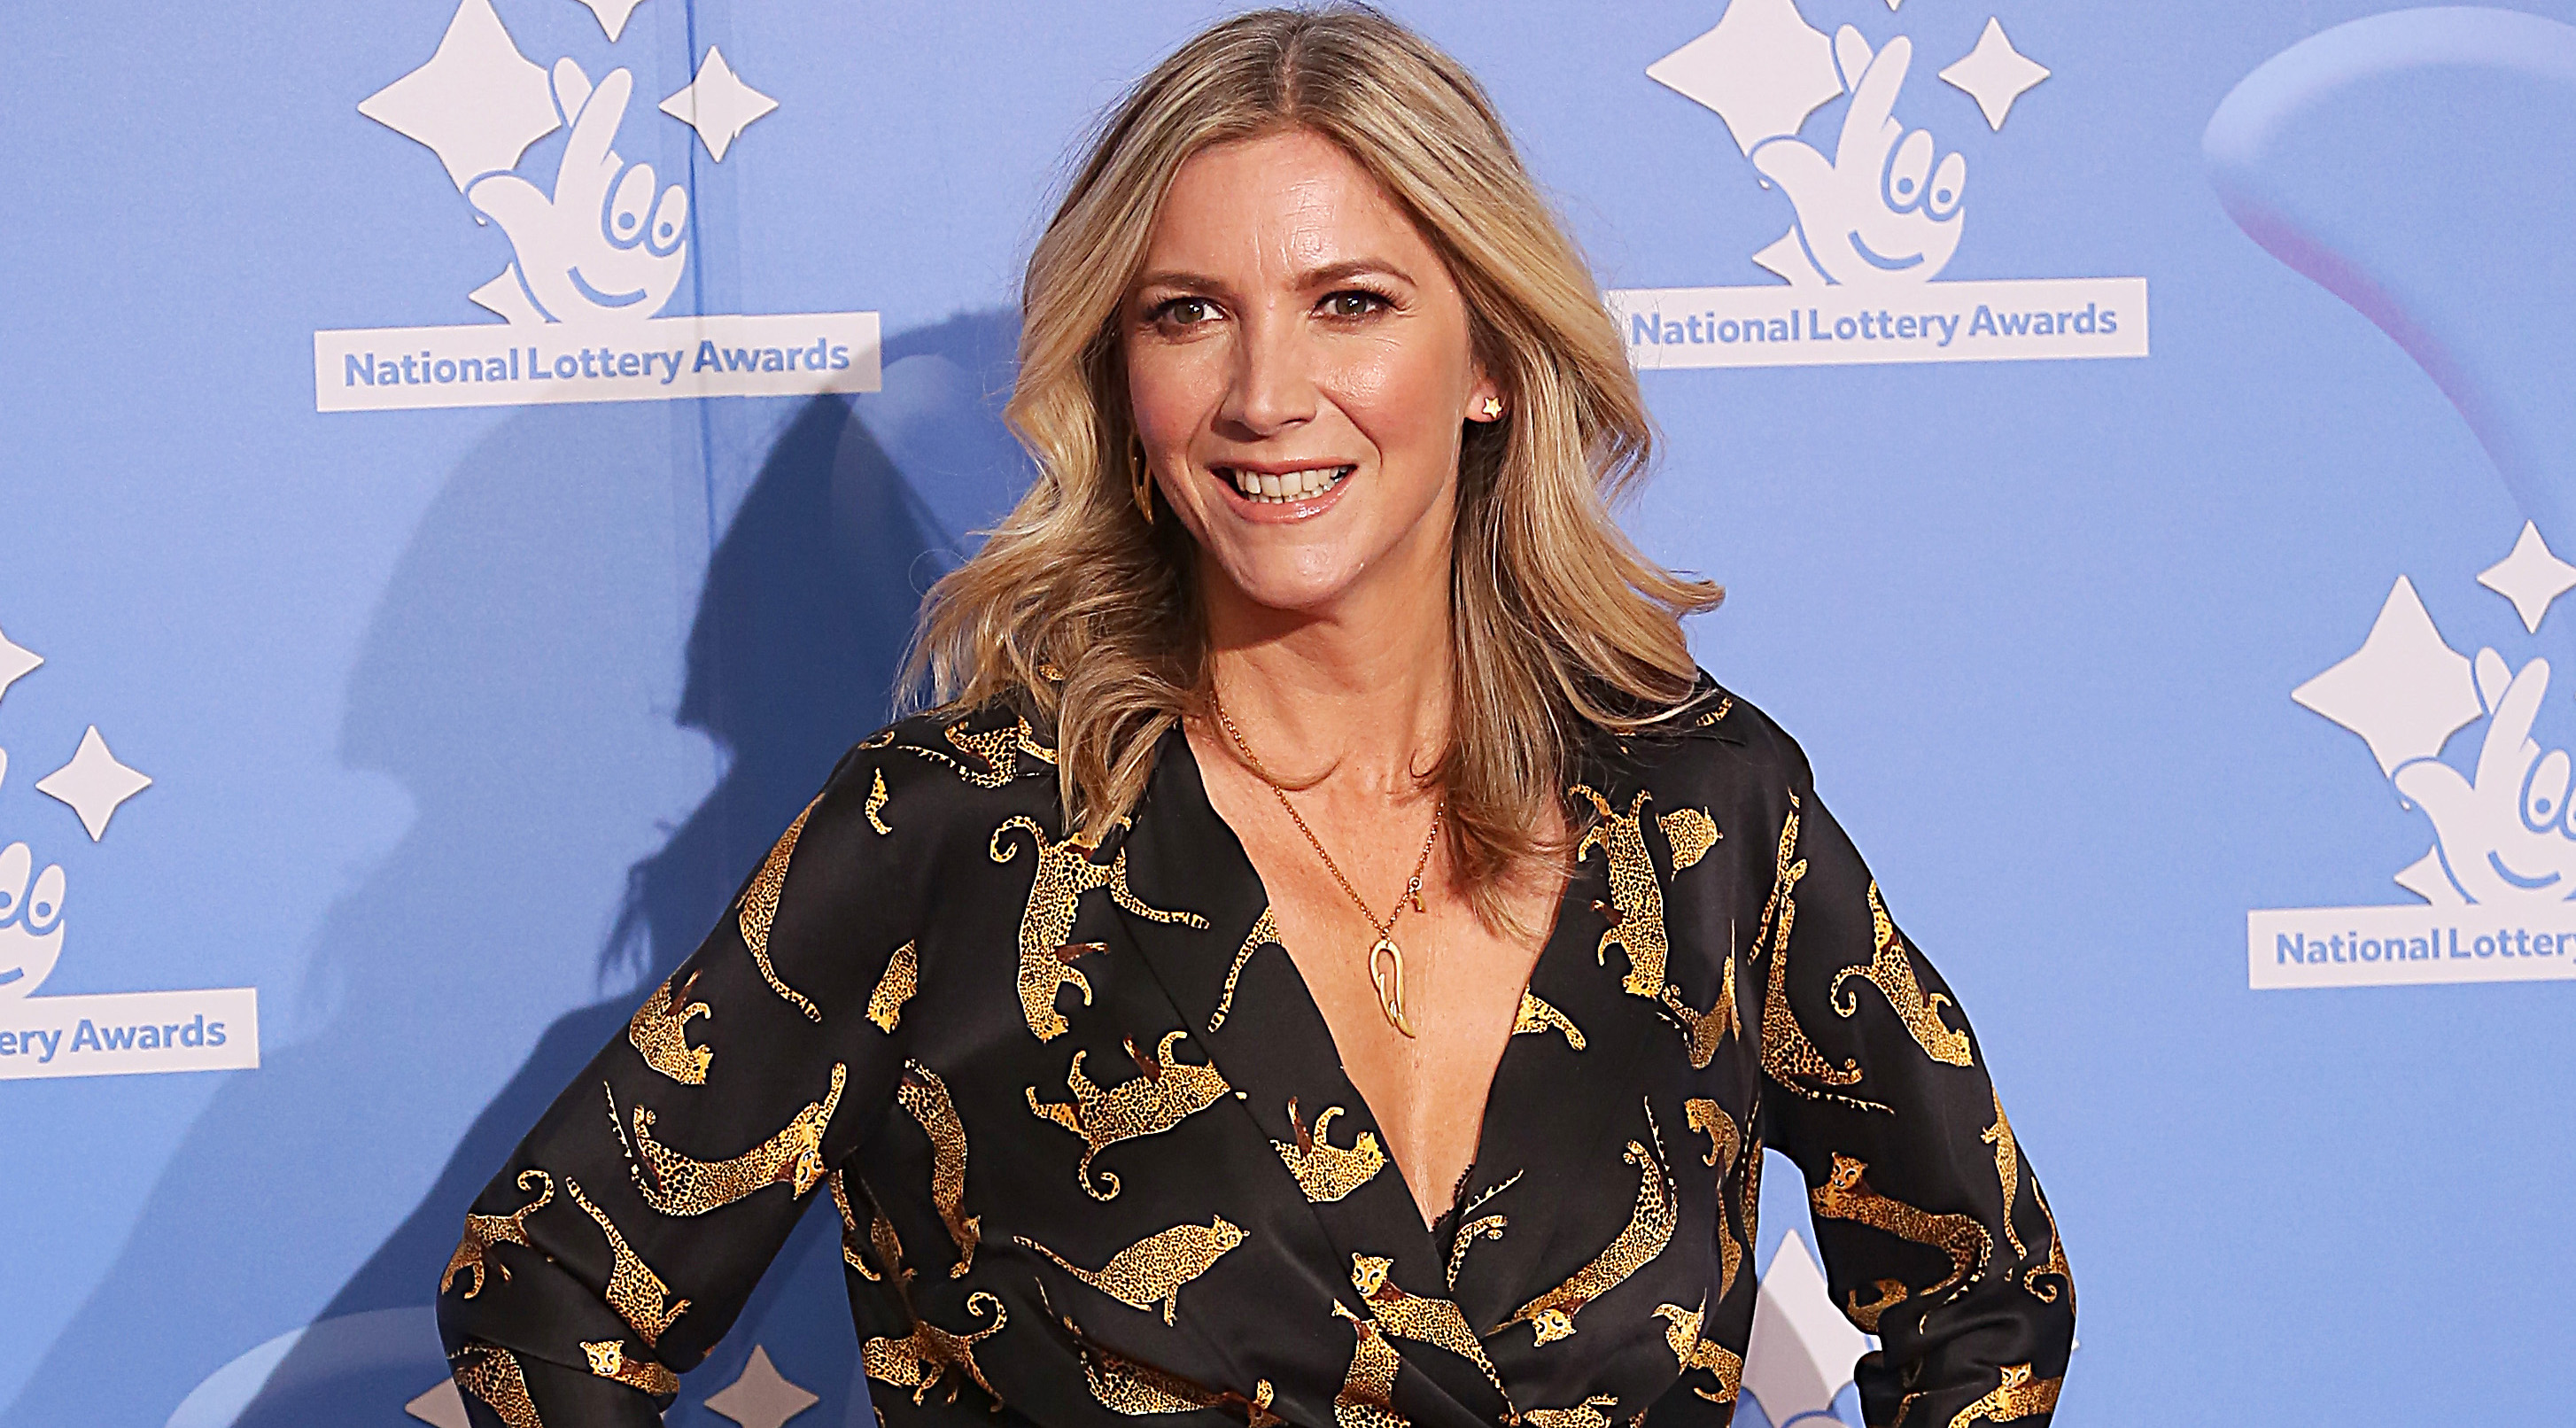 Lisa Faulkner celebrates honeymoon with John Torode by sharing beach selfie with fans